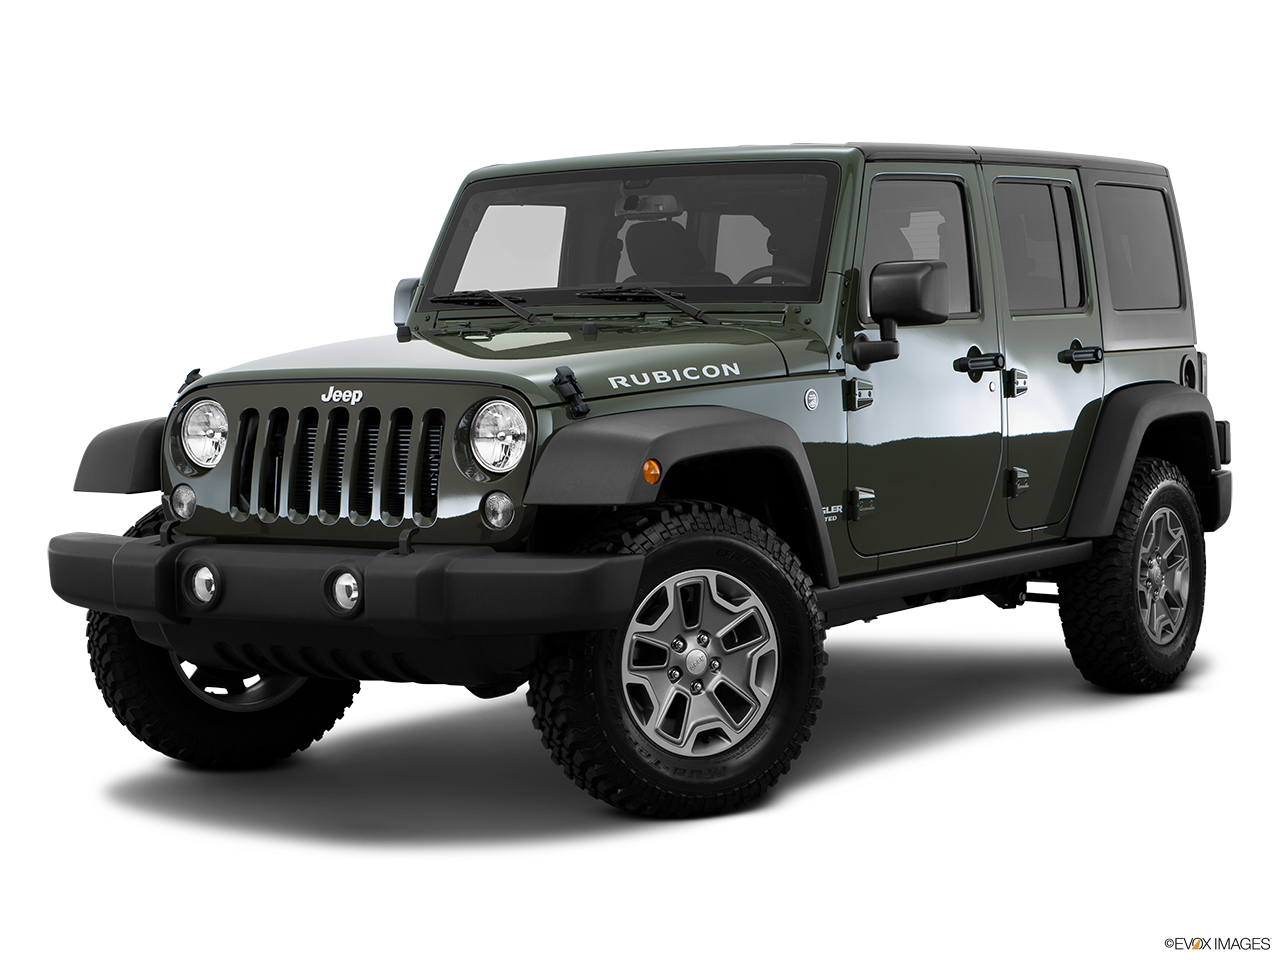 Test Drive A 2016 Jeep Wrangler Unlimited at Premier Jeep in Tracy